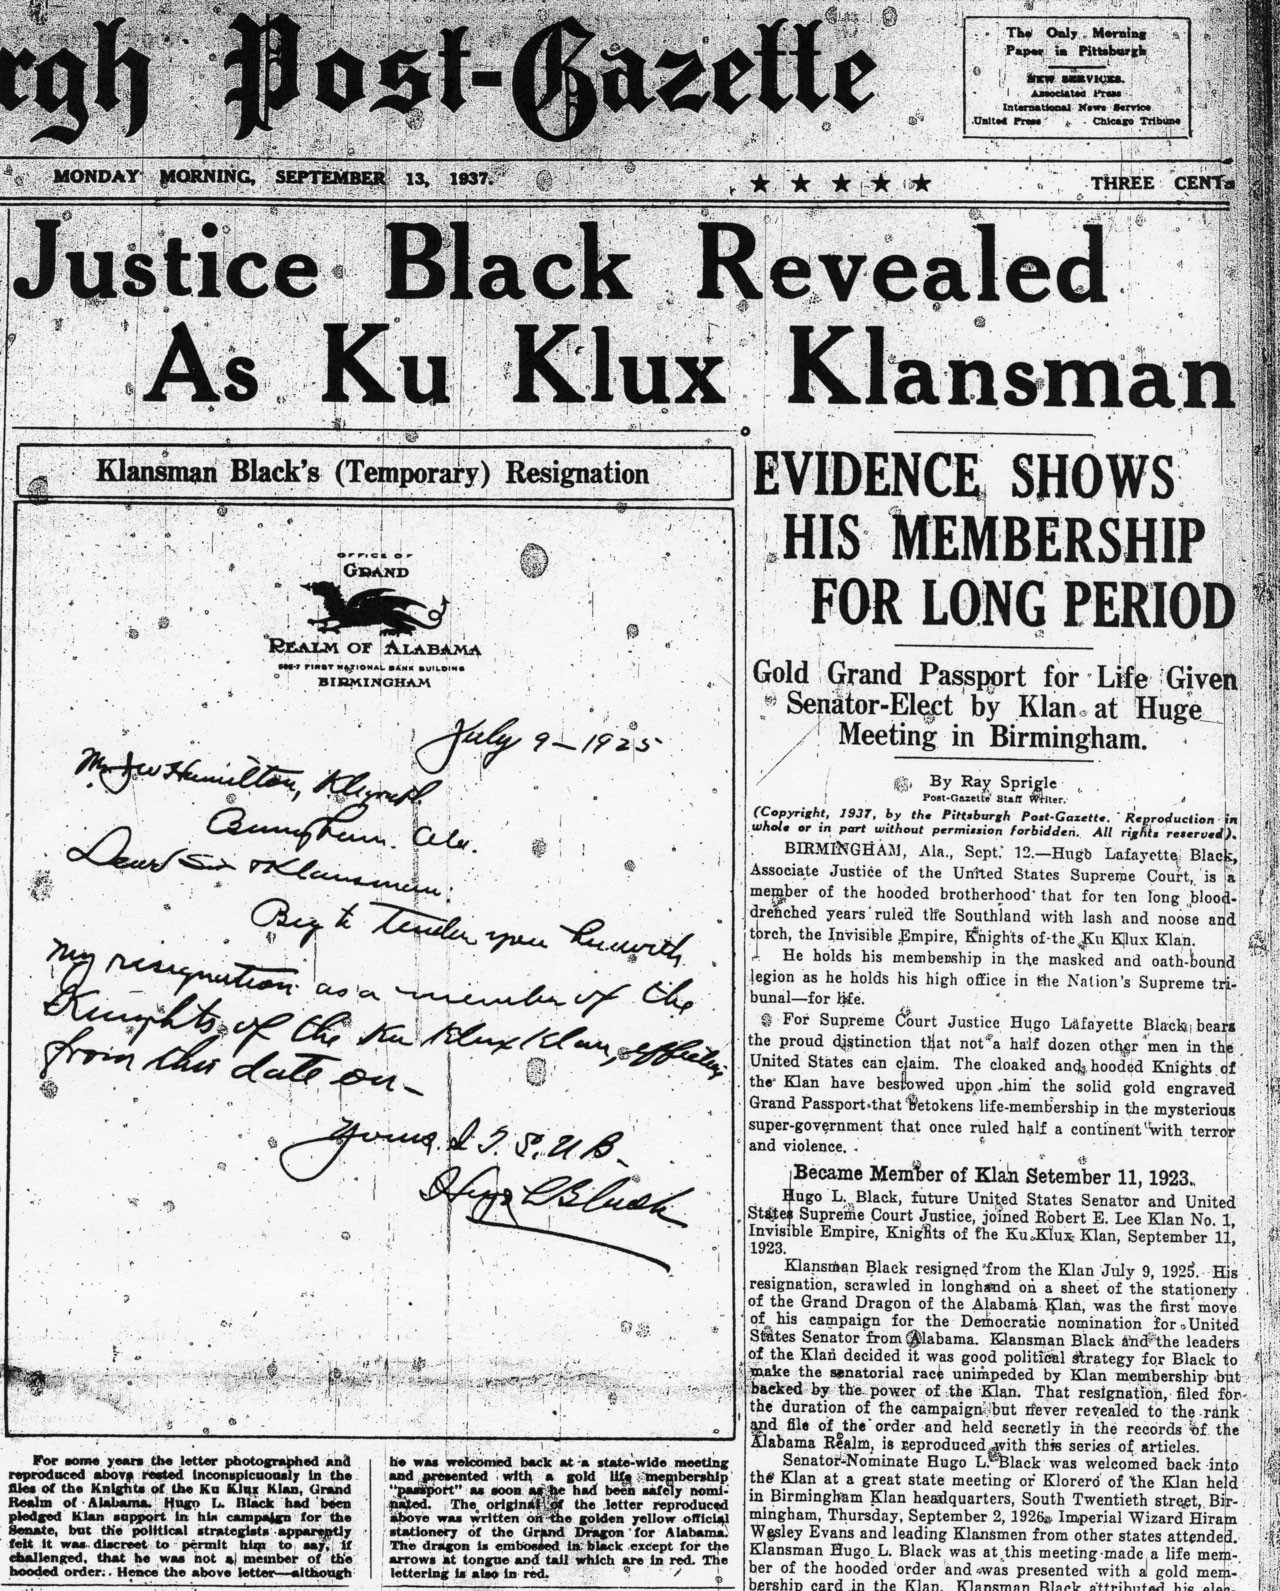 a u s supreme court justice was in the ku klux klan and he  the 13 1937 front page of the pittsburgh post gazette printed an image of black s kkk resignation letter